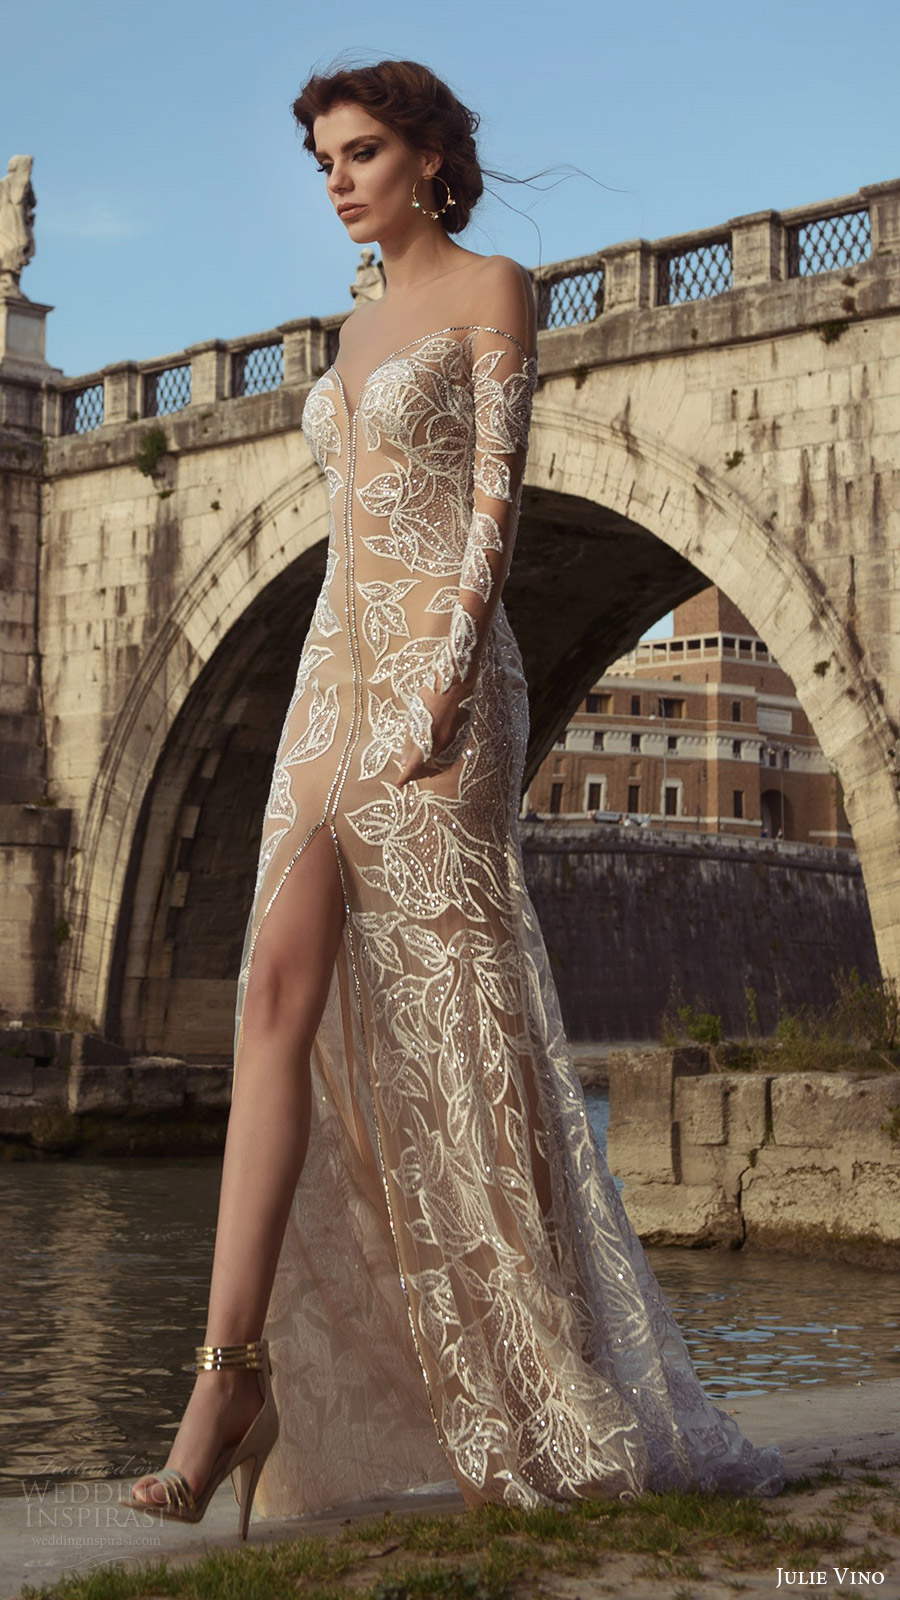 julie vino bridal spring 2017 long sleeves illusion off shoulder beaded sheath wedding dress (tatiana) fv nude color slit skirt